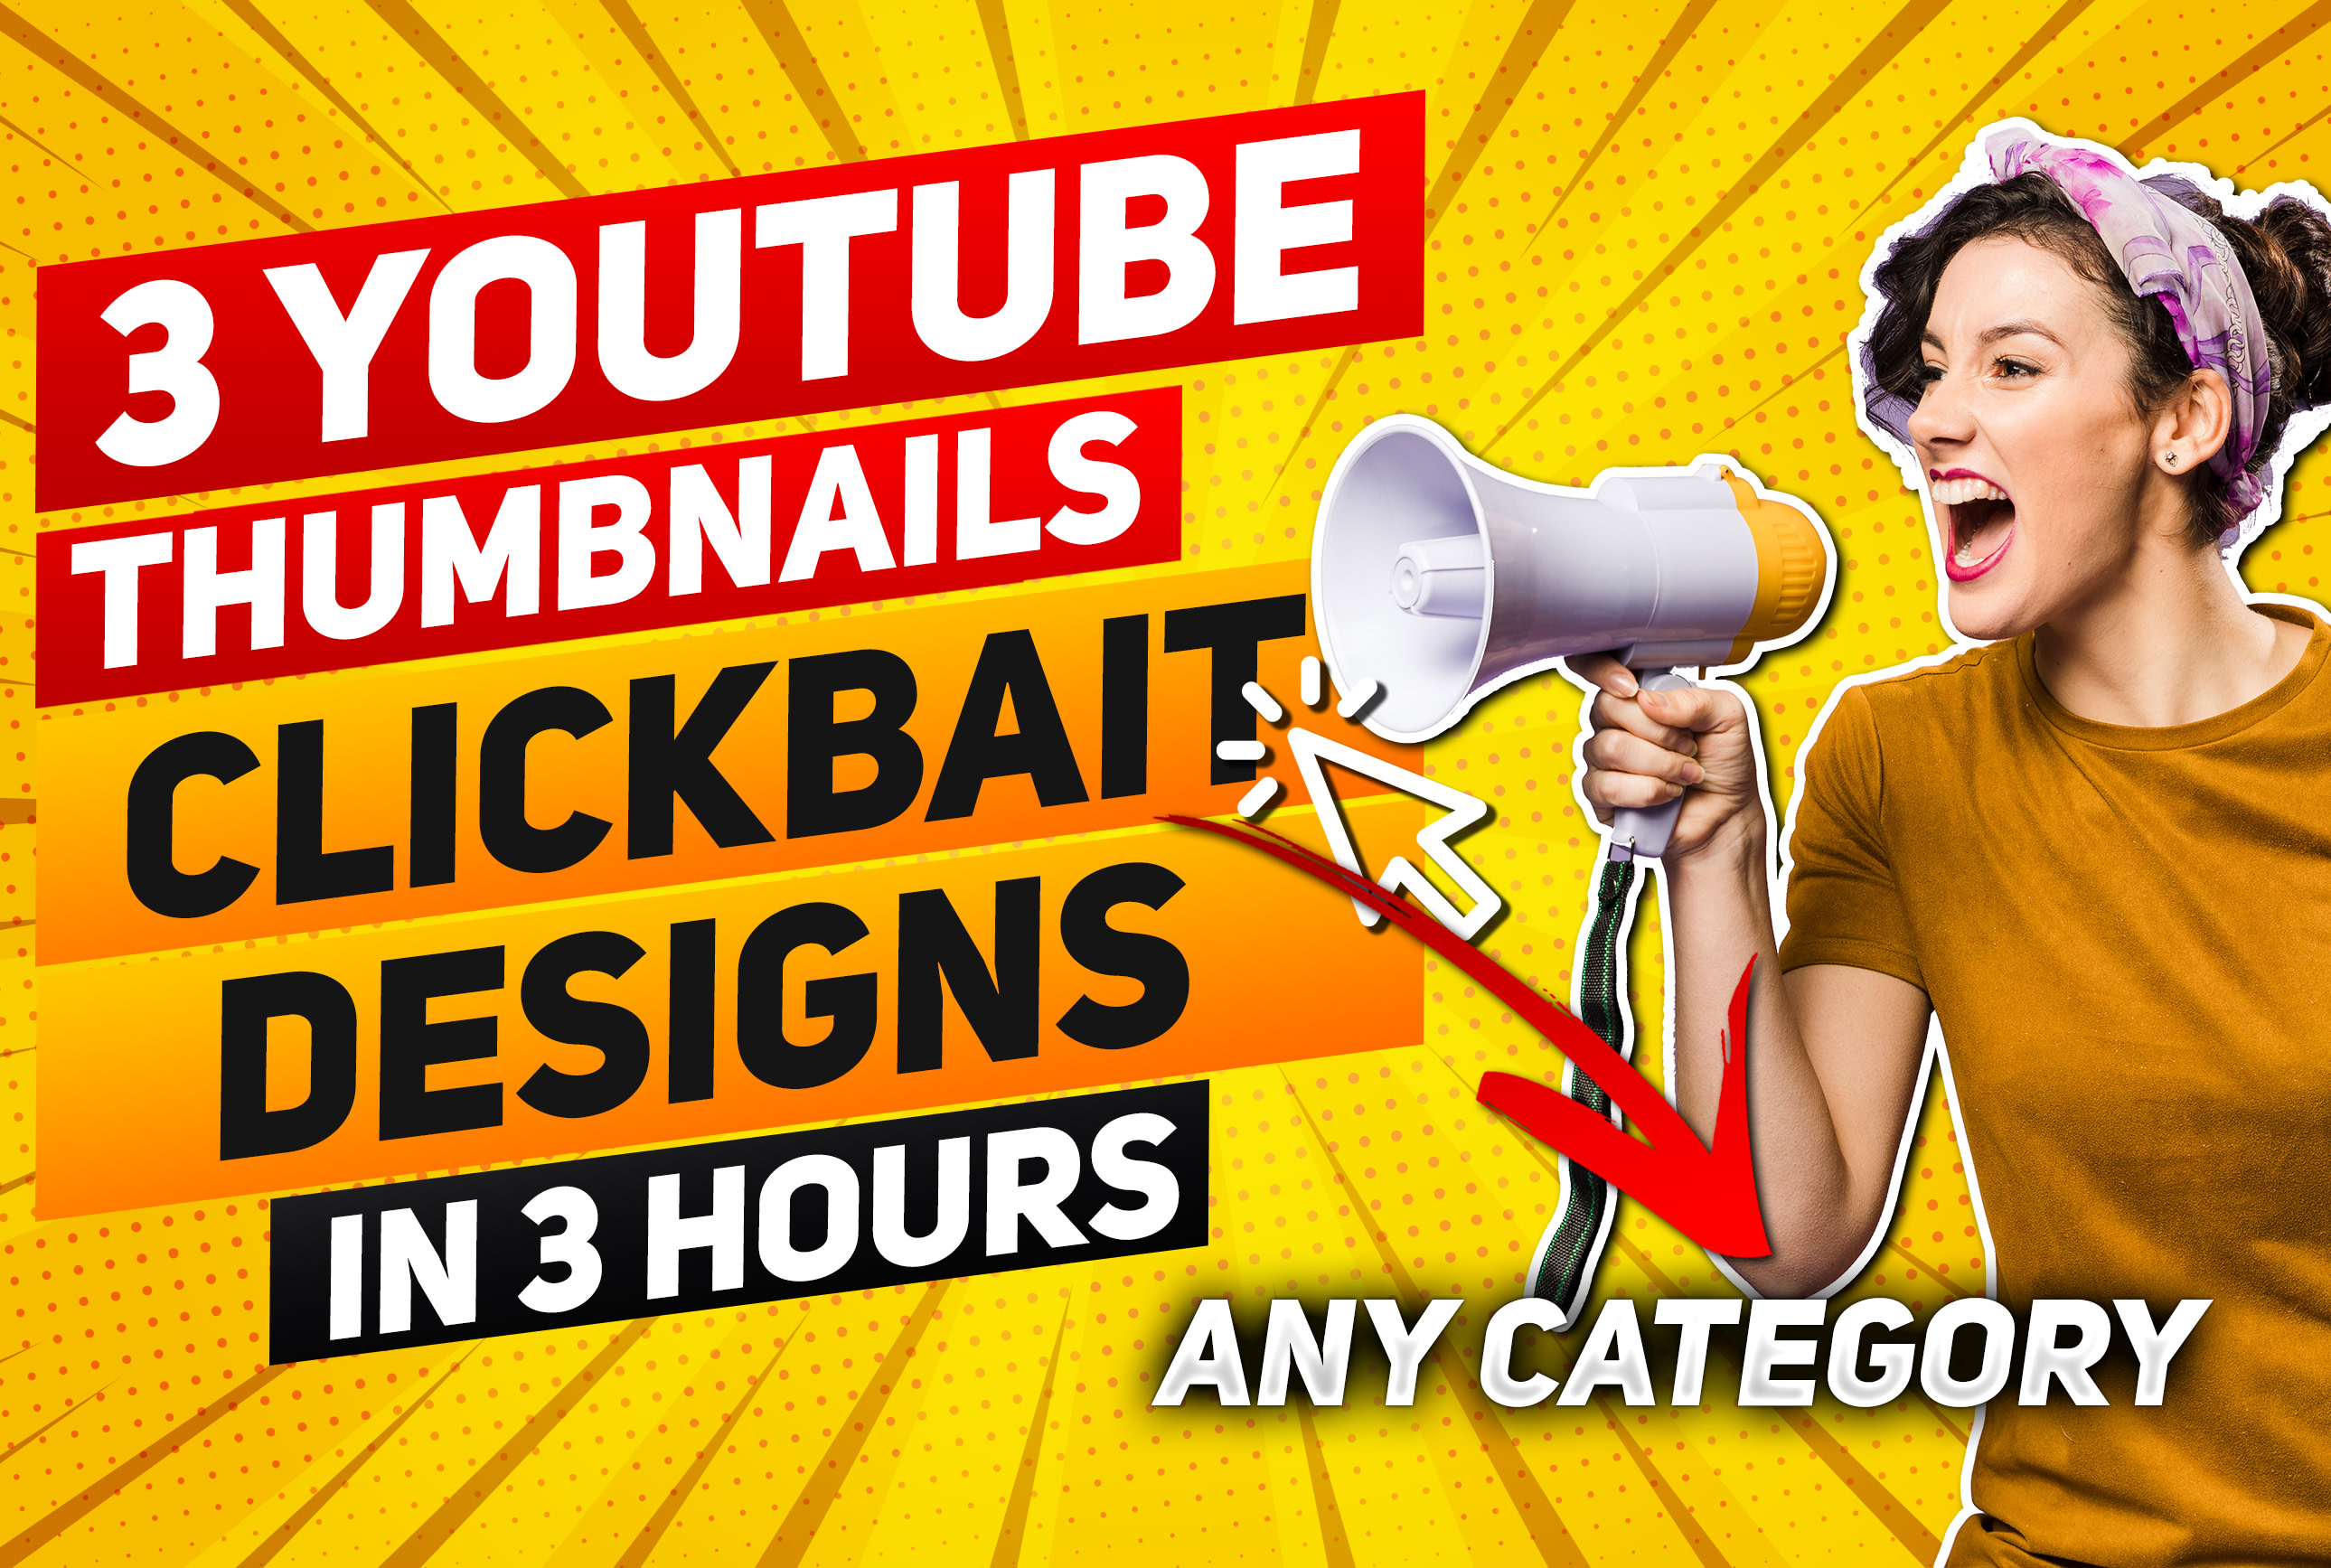 I will design 3 Eye Catching Clickbait YouTube Thumbnail Designs